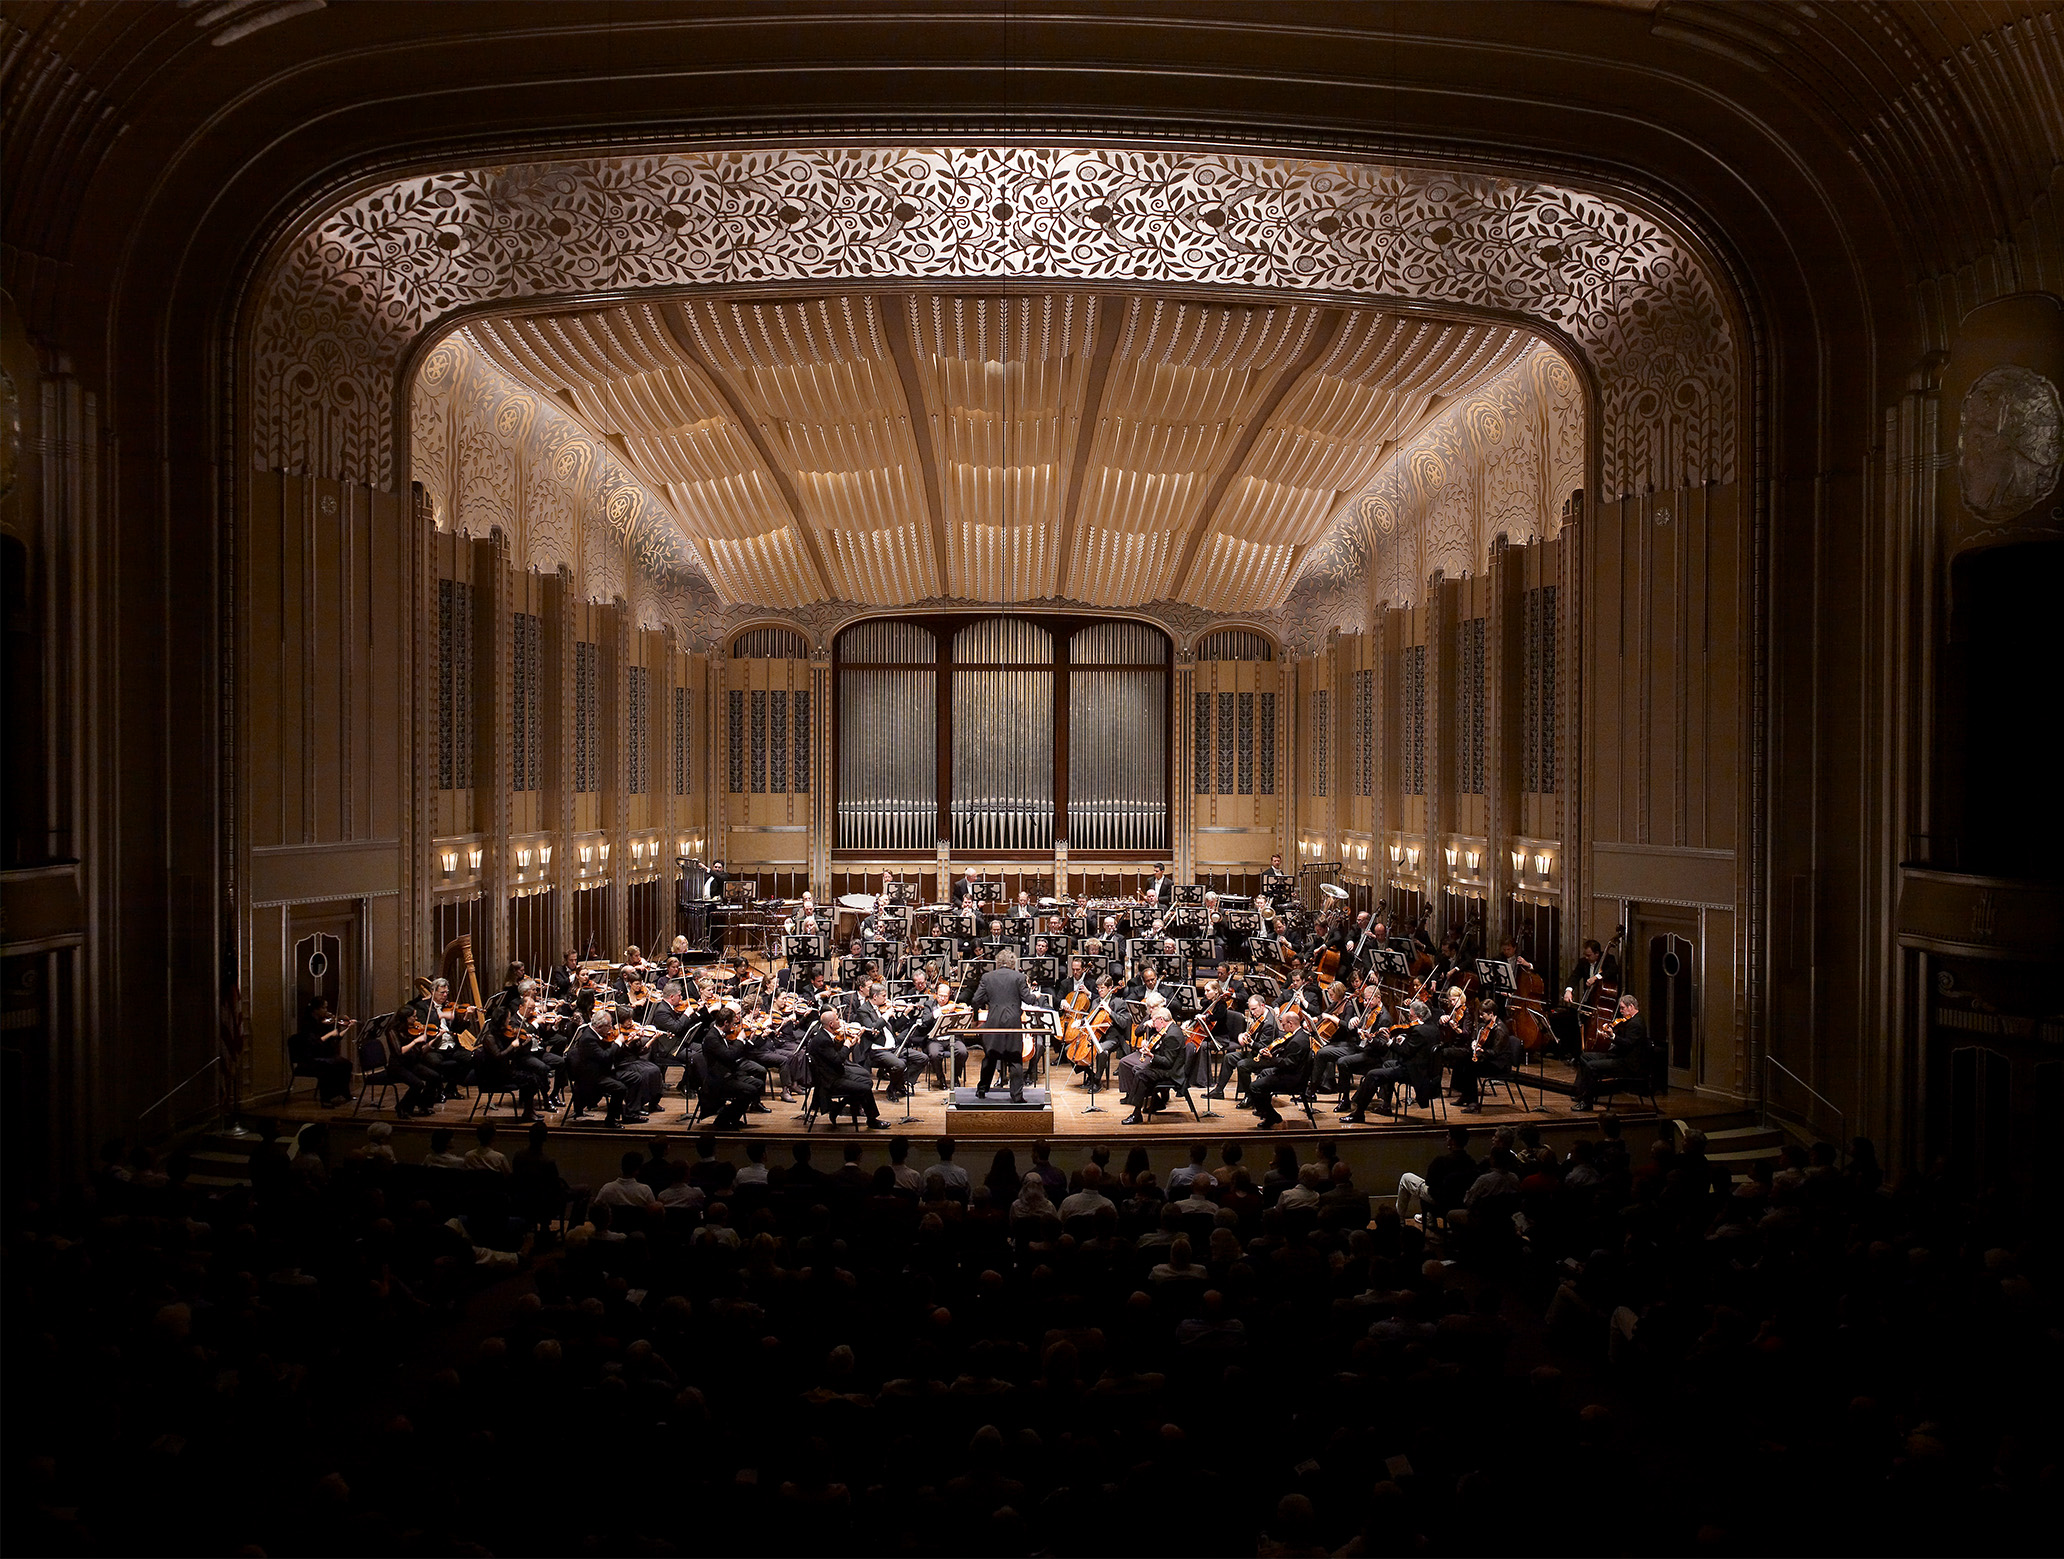 The Cleveland Orchestra, conducted by Franz Welser-Möst, is performing in Severance Hall. The photo shows the Orchestra and Franz animatedly performing and conducting, respectively.